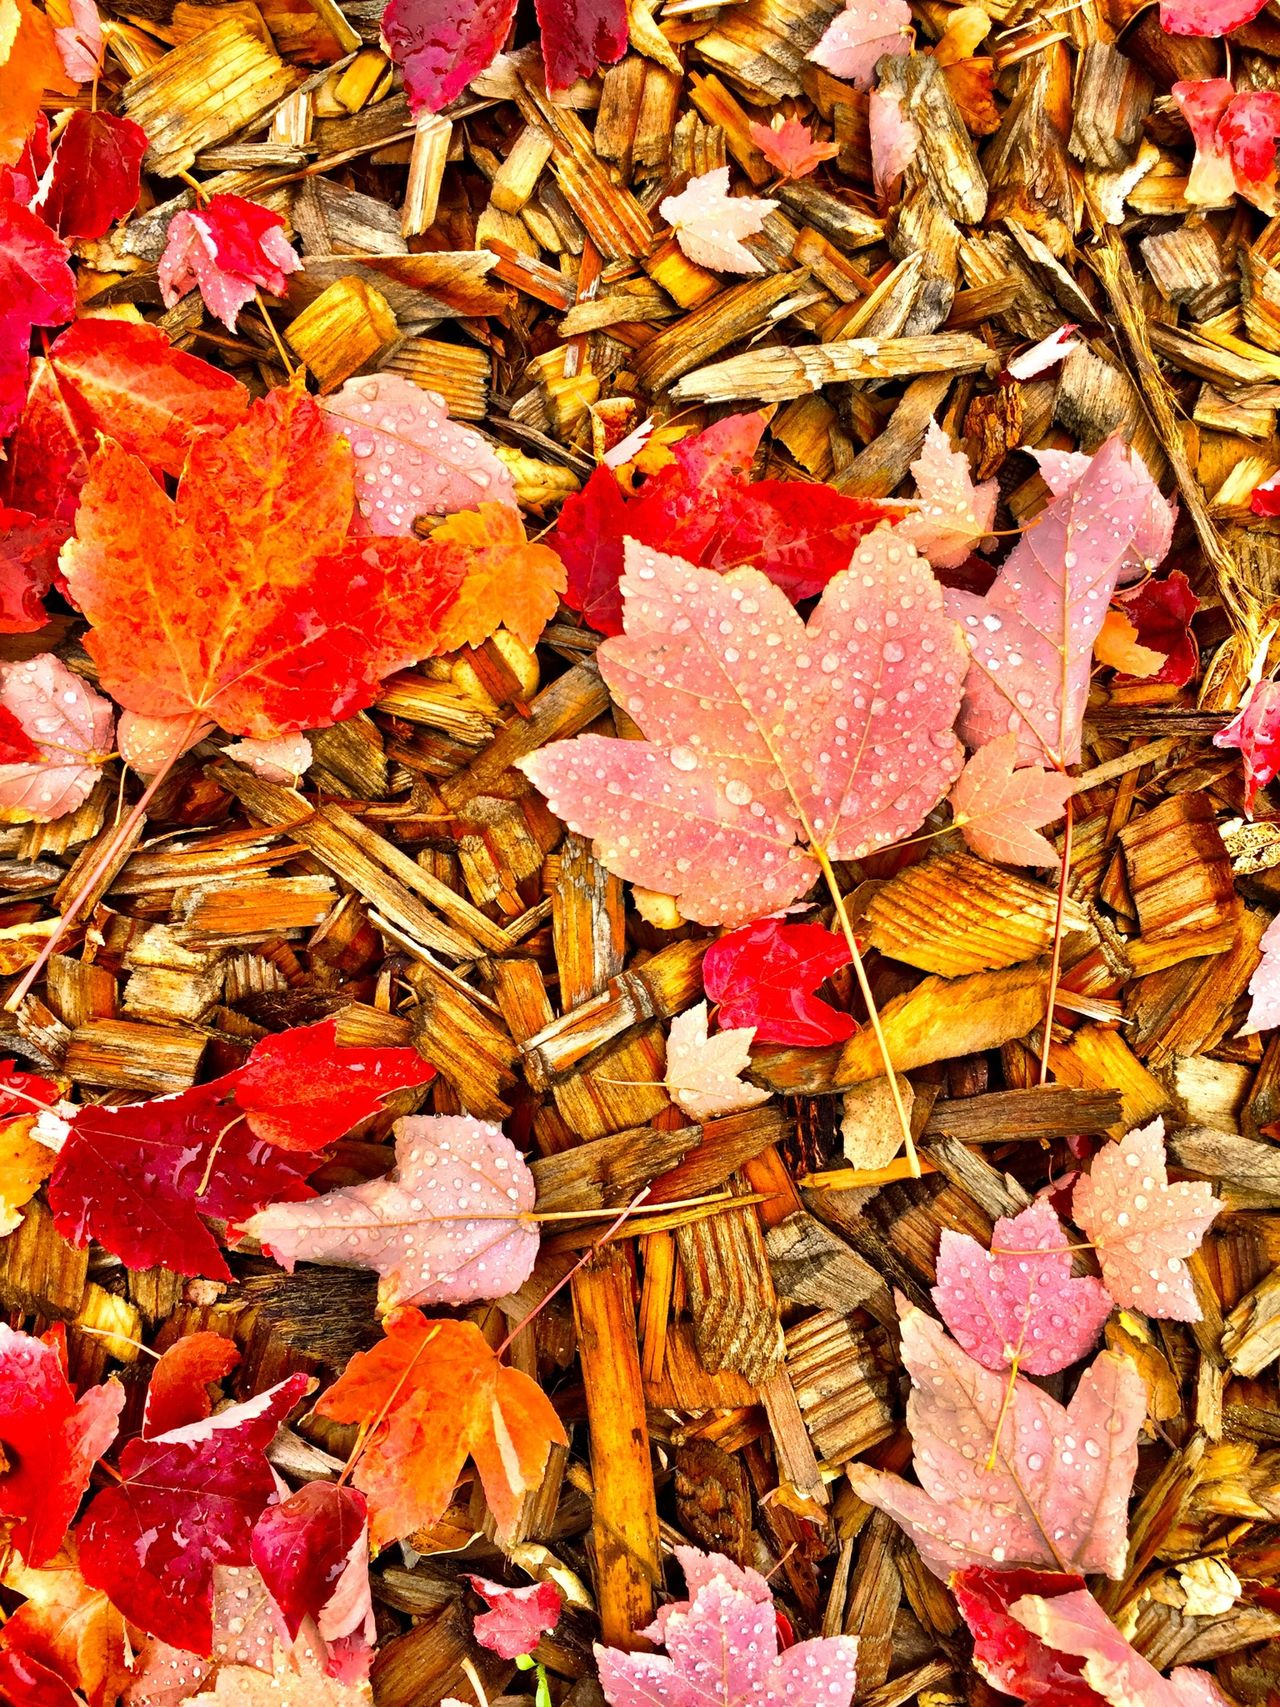 """Autumn Potpourri"" A mixture of bark, multicolored Autumn leaves and morning dew make for a beautiful, natural, photo arrangement. Dew Dewdrop Morningdew Bark Autumn Colors Autumn Leafs Fallen Leaves Autumn Leaves Autumn🍁🍁🍁 Fall Colors Autumn 2015 Colors Of Autumn Dewdrops_Beauty Waterdrops Waterdroplets Dew Drops"